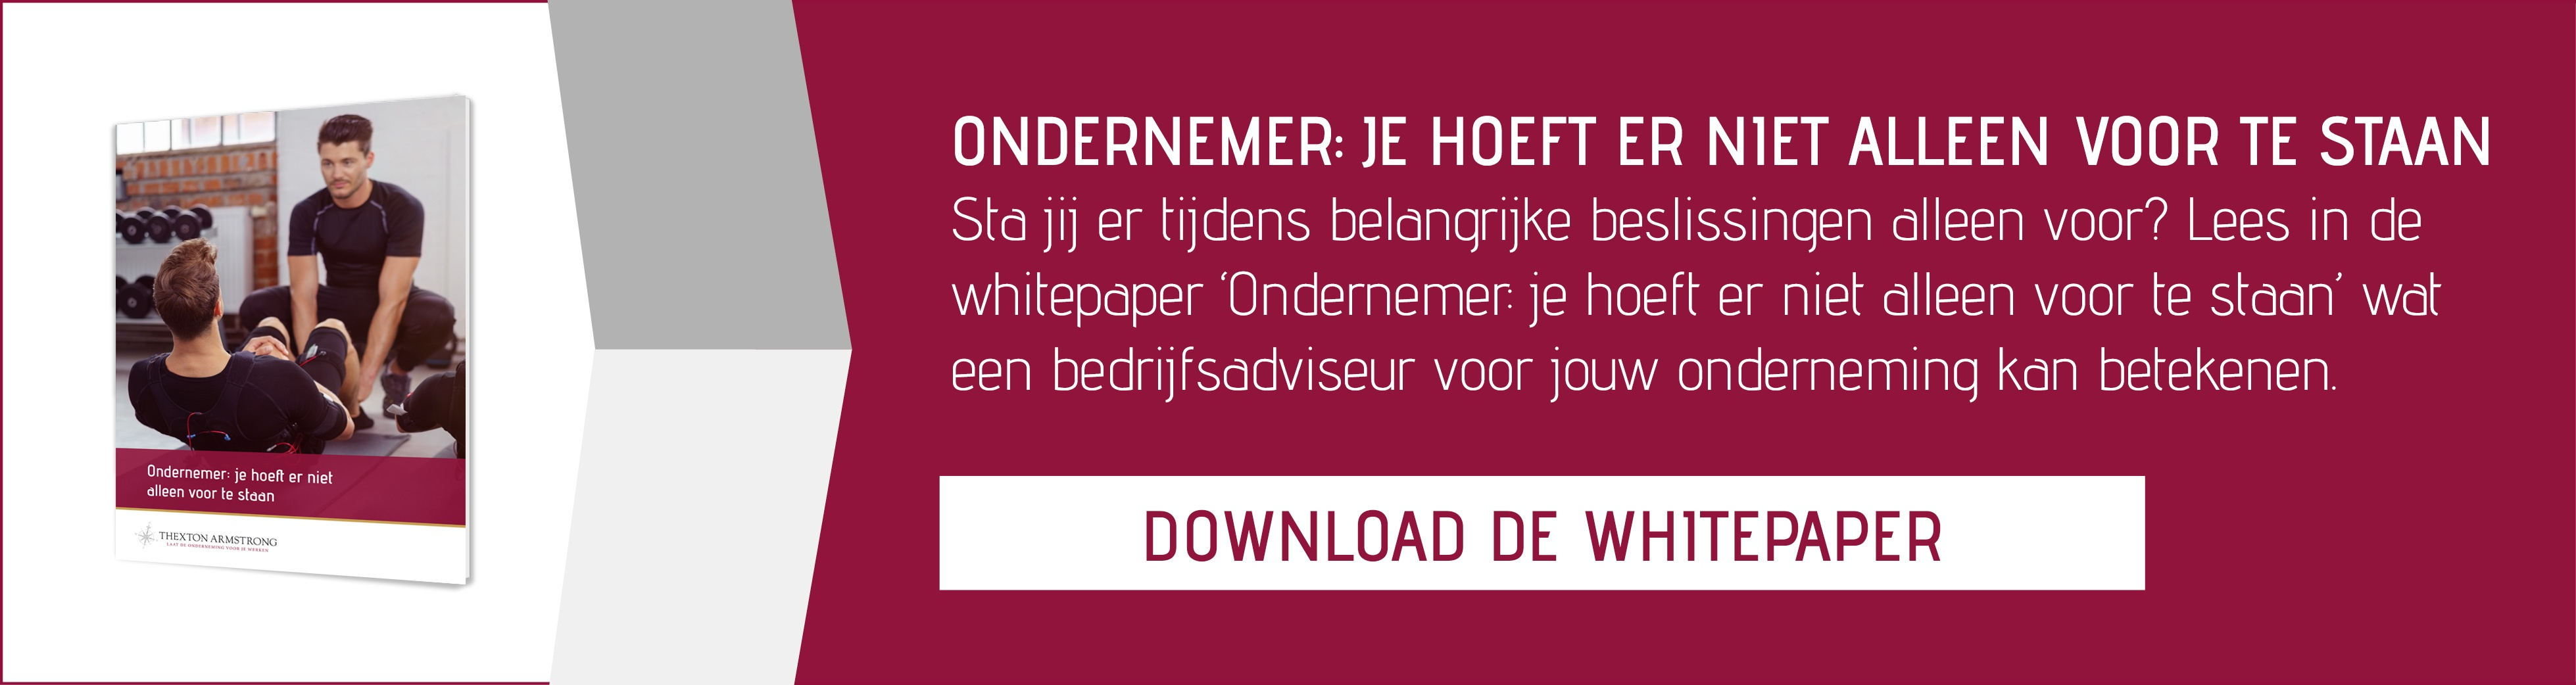 Download de business case